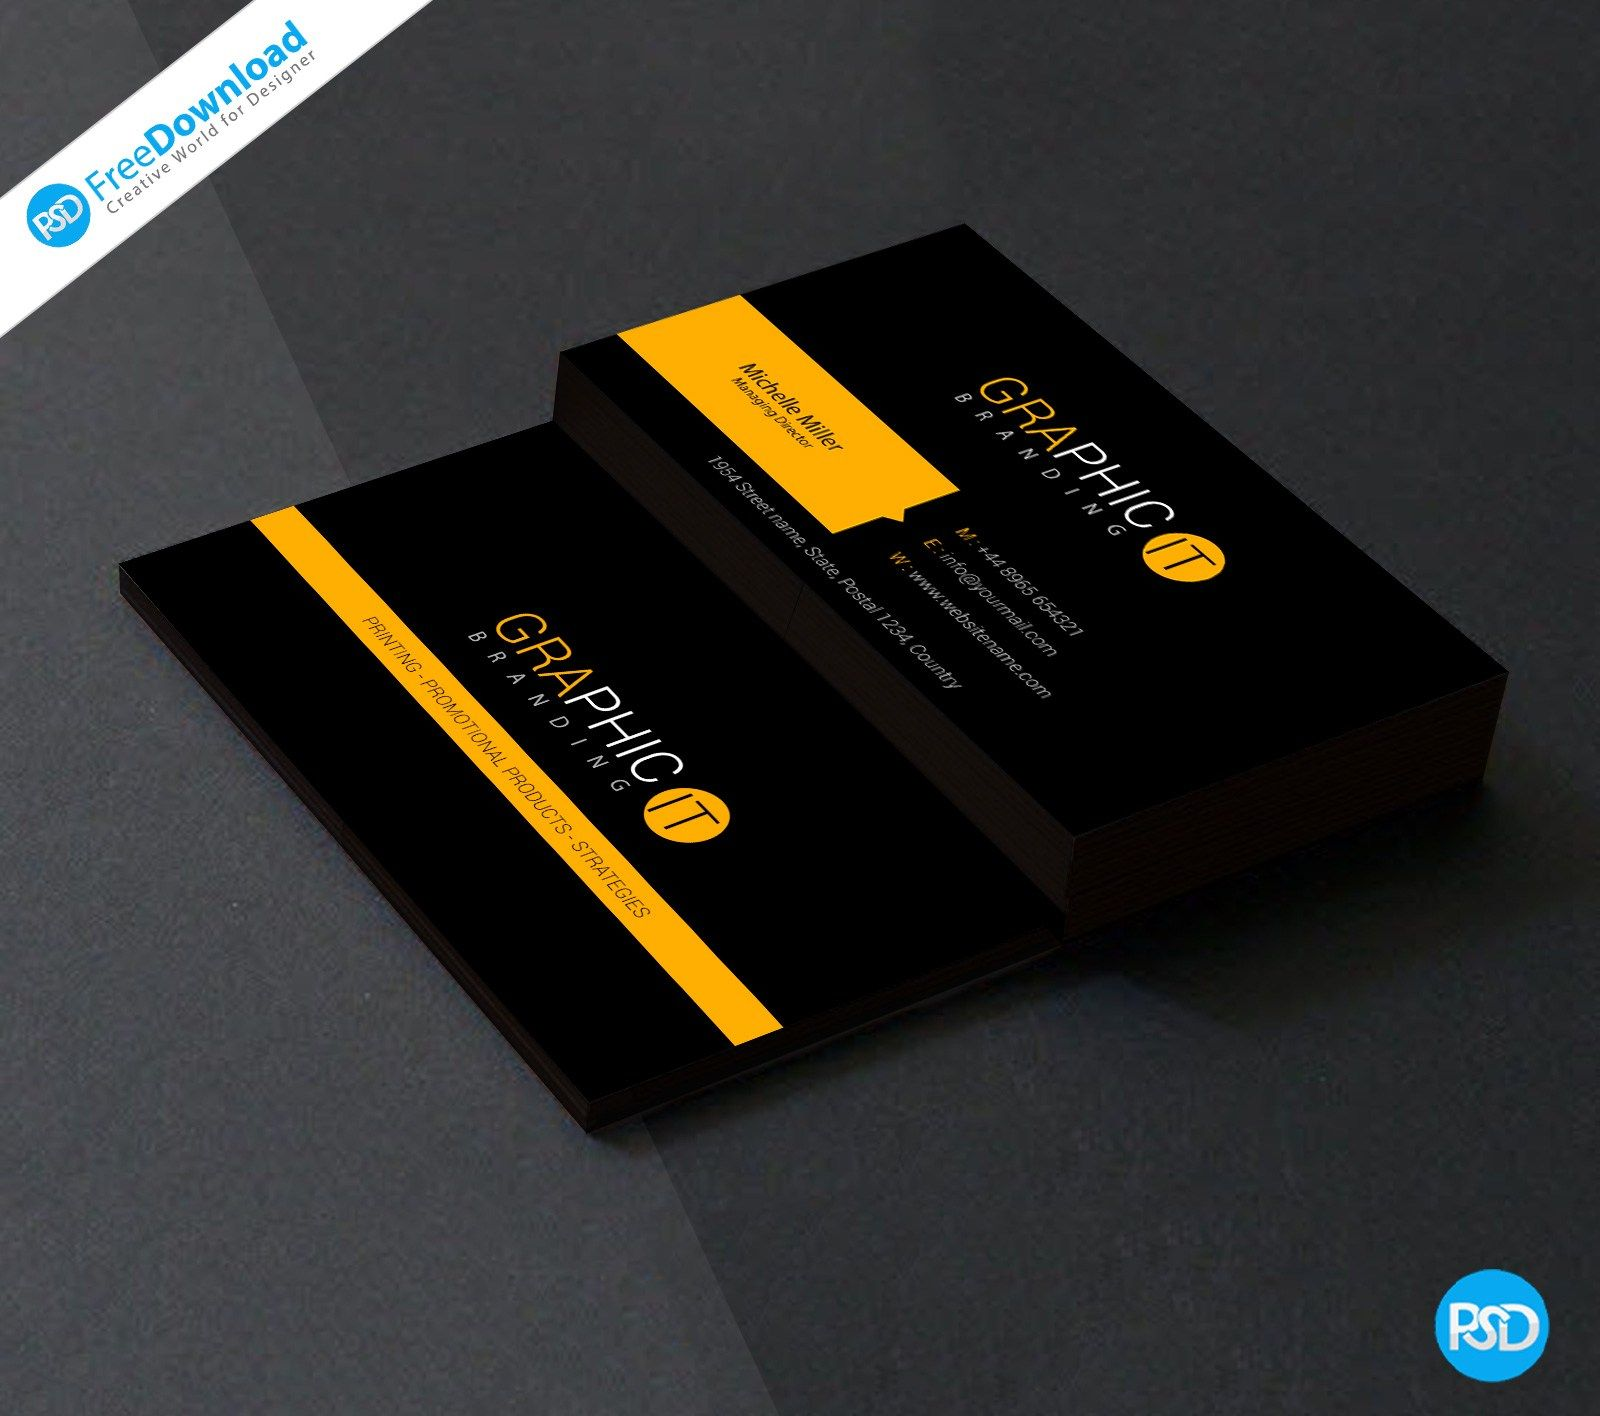 010 Blank Business Card Template Photoshop Free Download Pertaining To Visiting Card Tem Visiting Card Templates Create Business Cards Visiting Card Design Psd